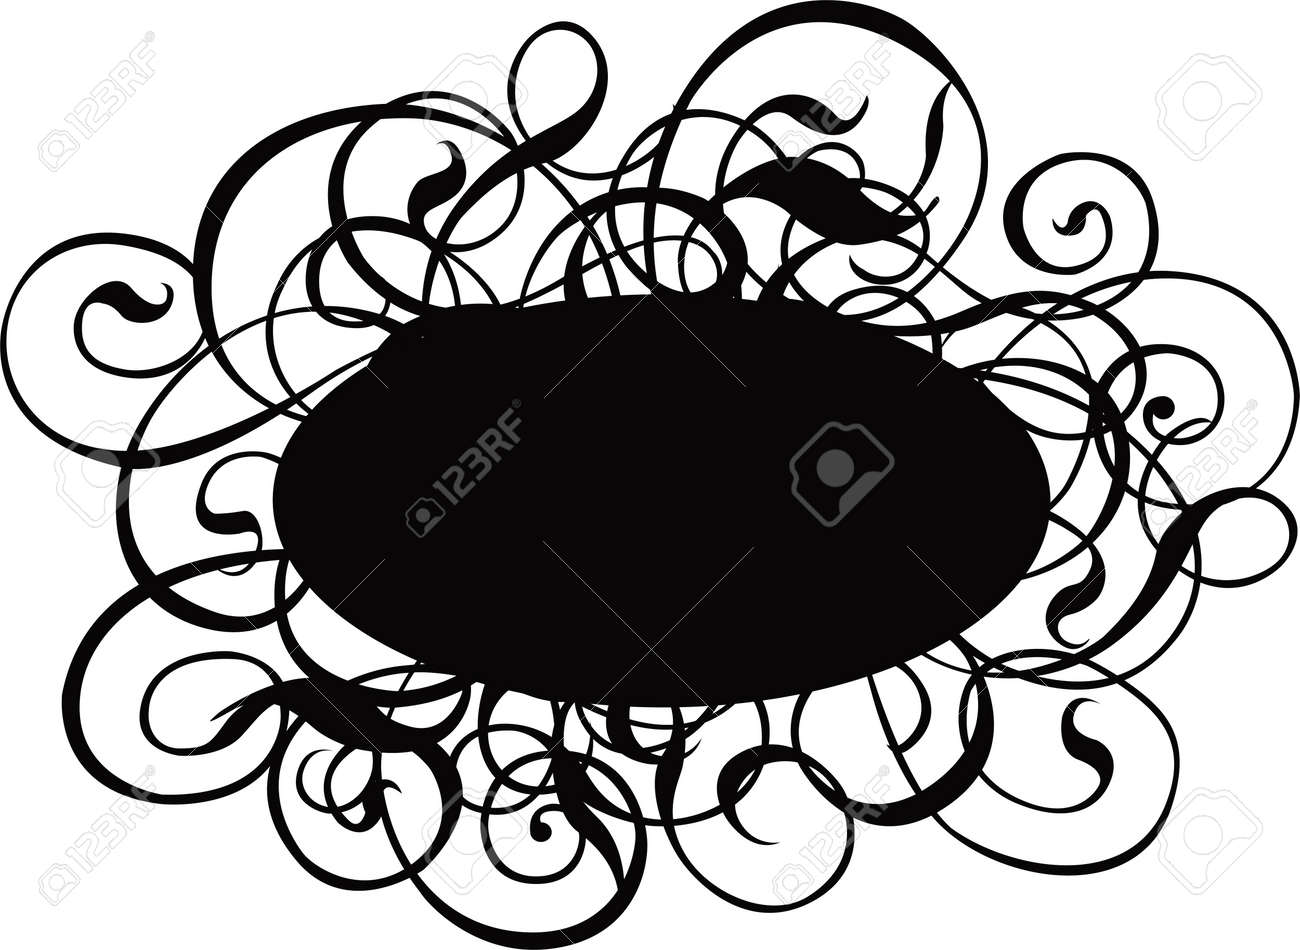 Scroll, cartouche, decor, vector illustration Stock Illustration - 310986